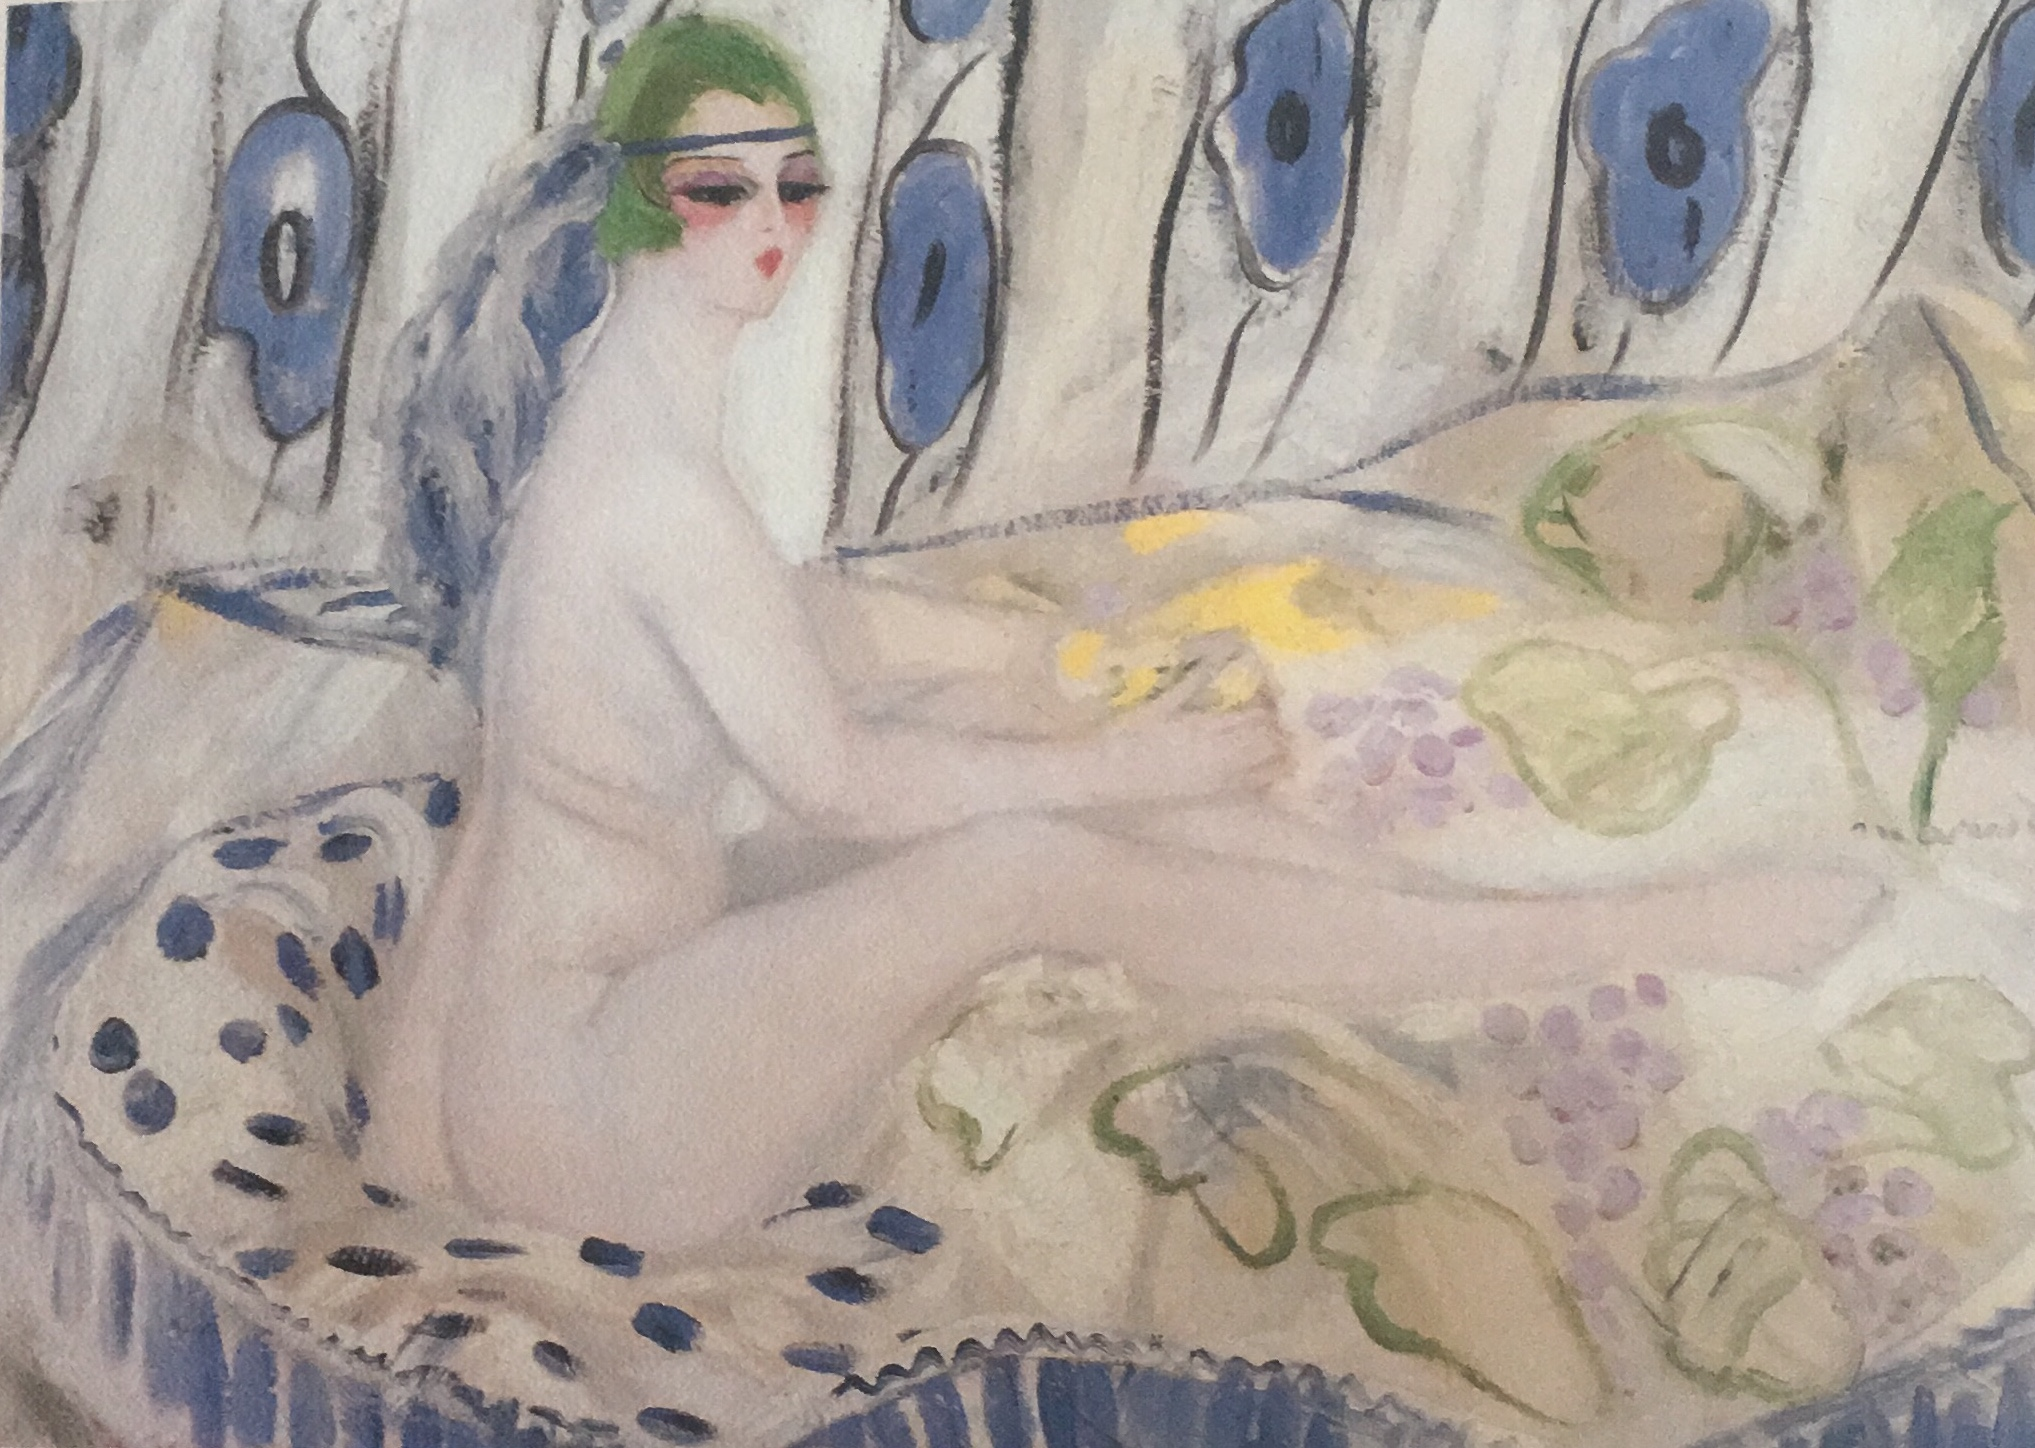 La Petite Cléopâtre, Jacqueline Marval, 1920. Oil on canvas, 0,995 m x 1, 37 m. Ohara Museum of Art, Kurashiki, Japon.